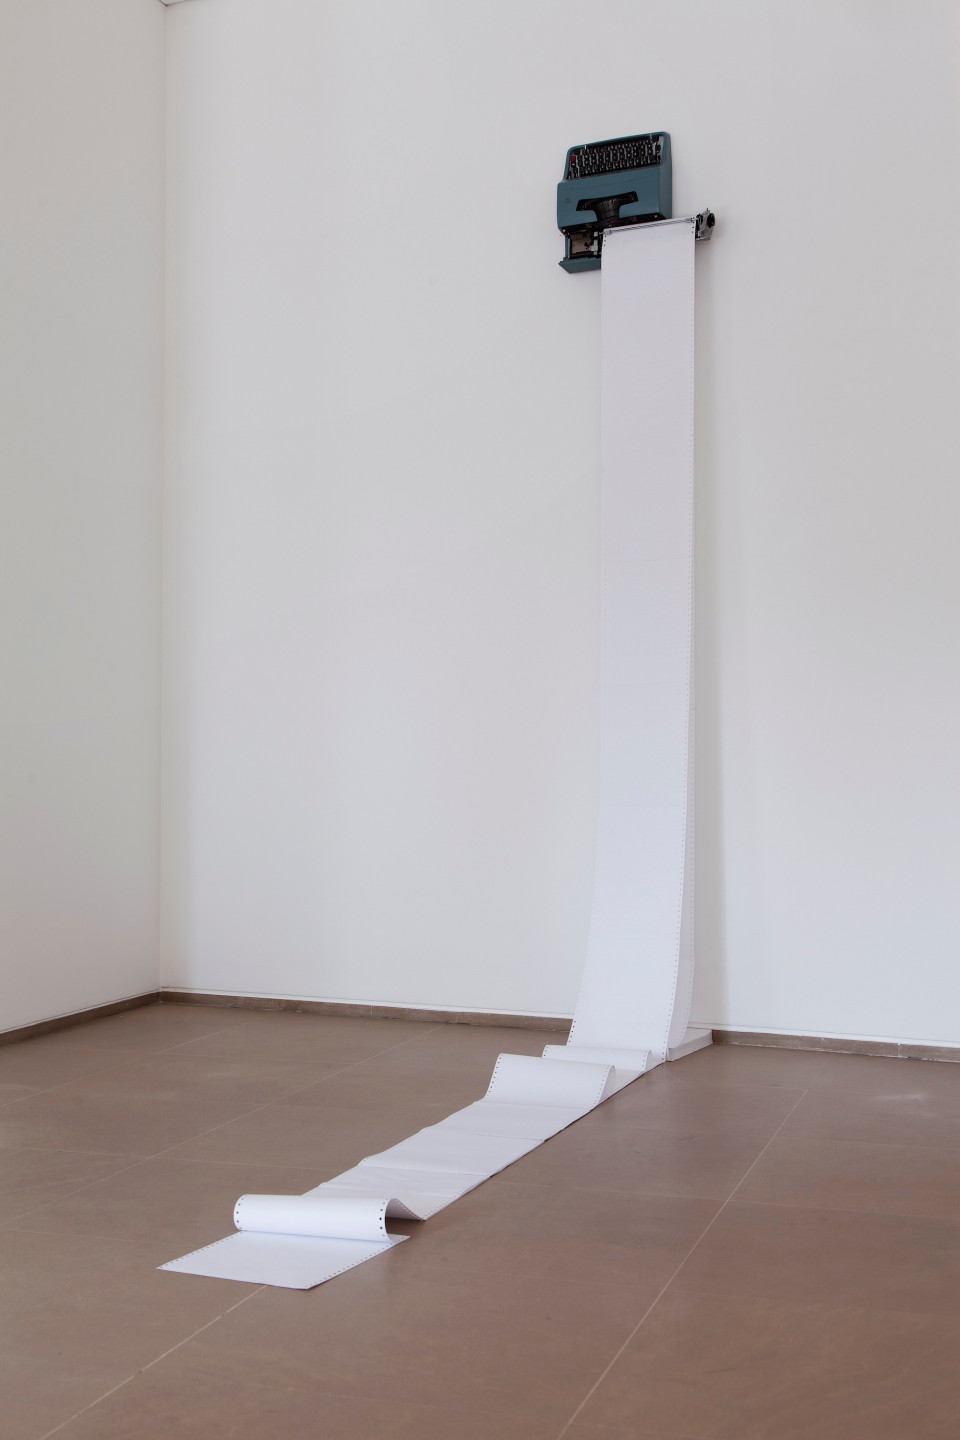 Public Messages, Installation View, 2014. Courtesy: Artopia Gallery.